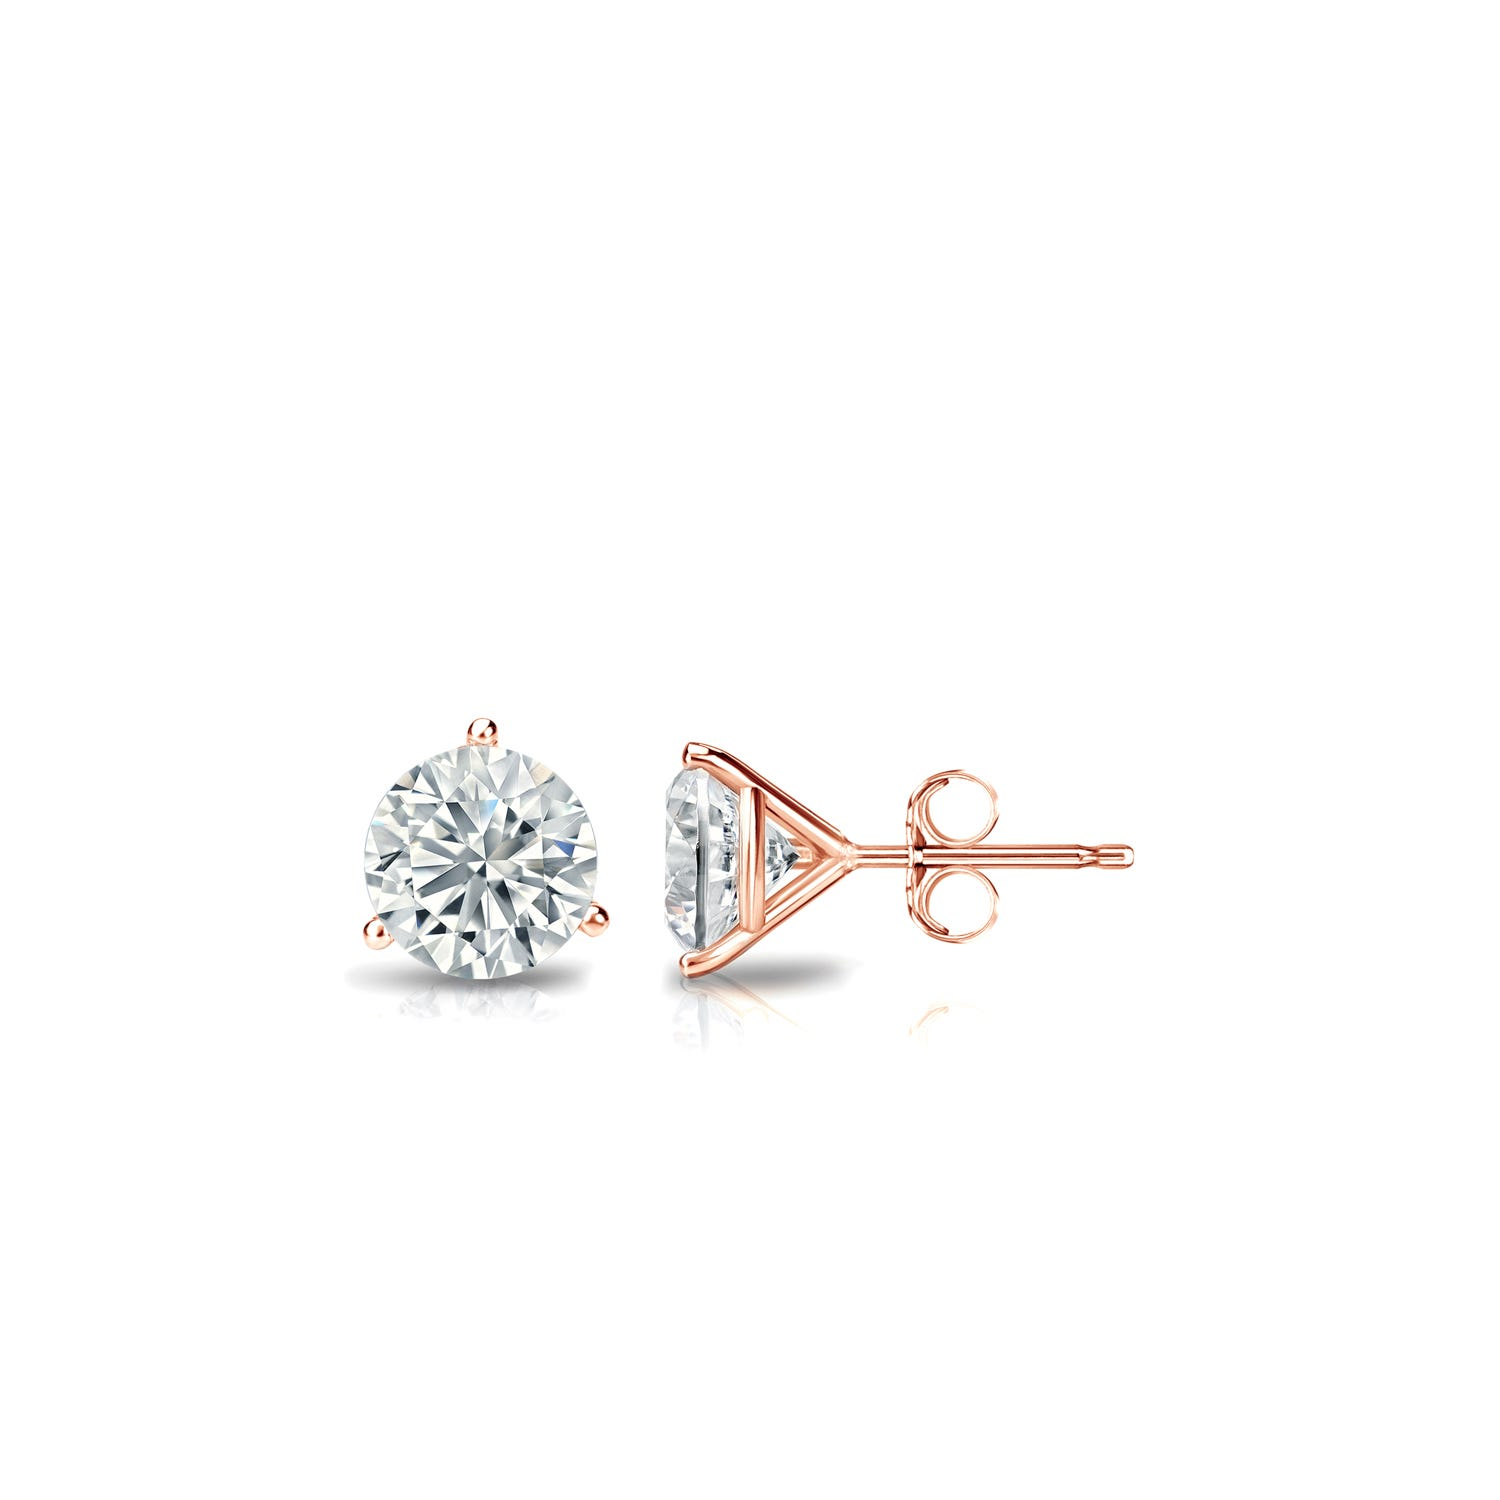 1/3 CTTW Round Diamond Solitaire Stud Earrings IJ SI2 in 14K Rose Gold 3-Prong Setting